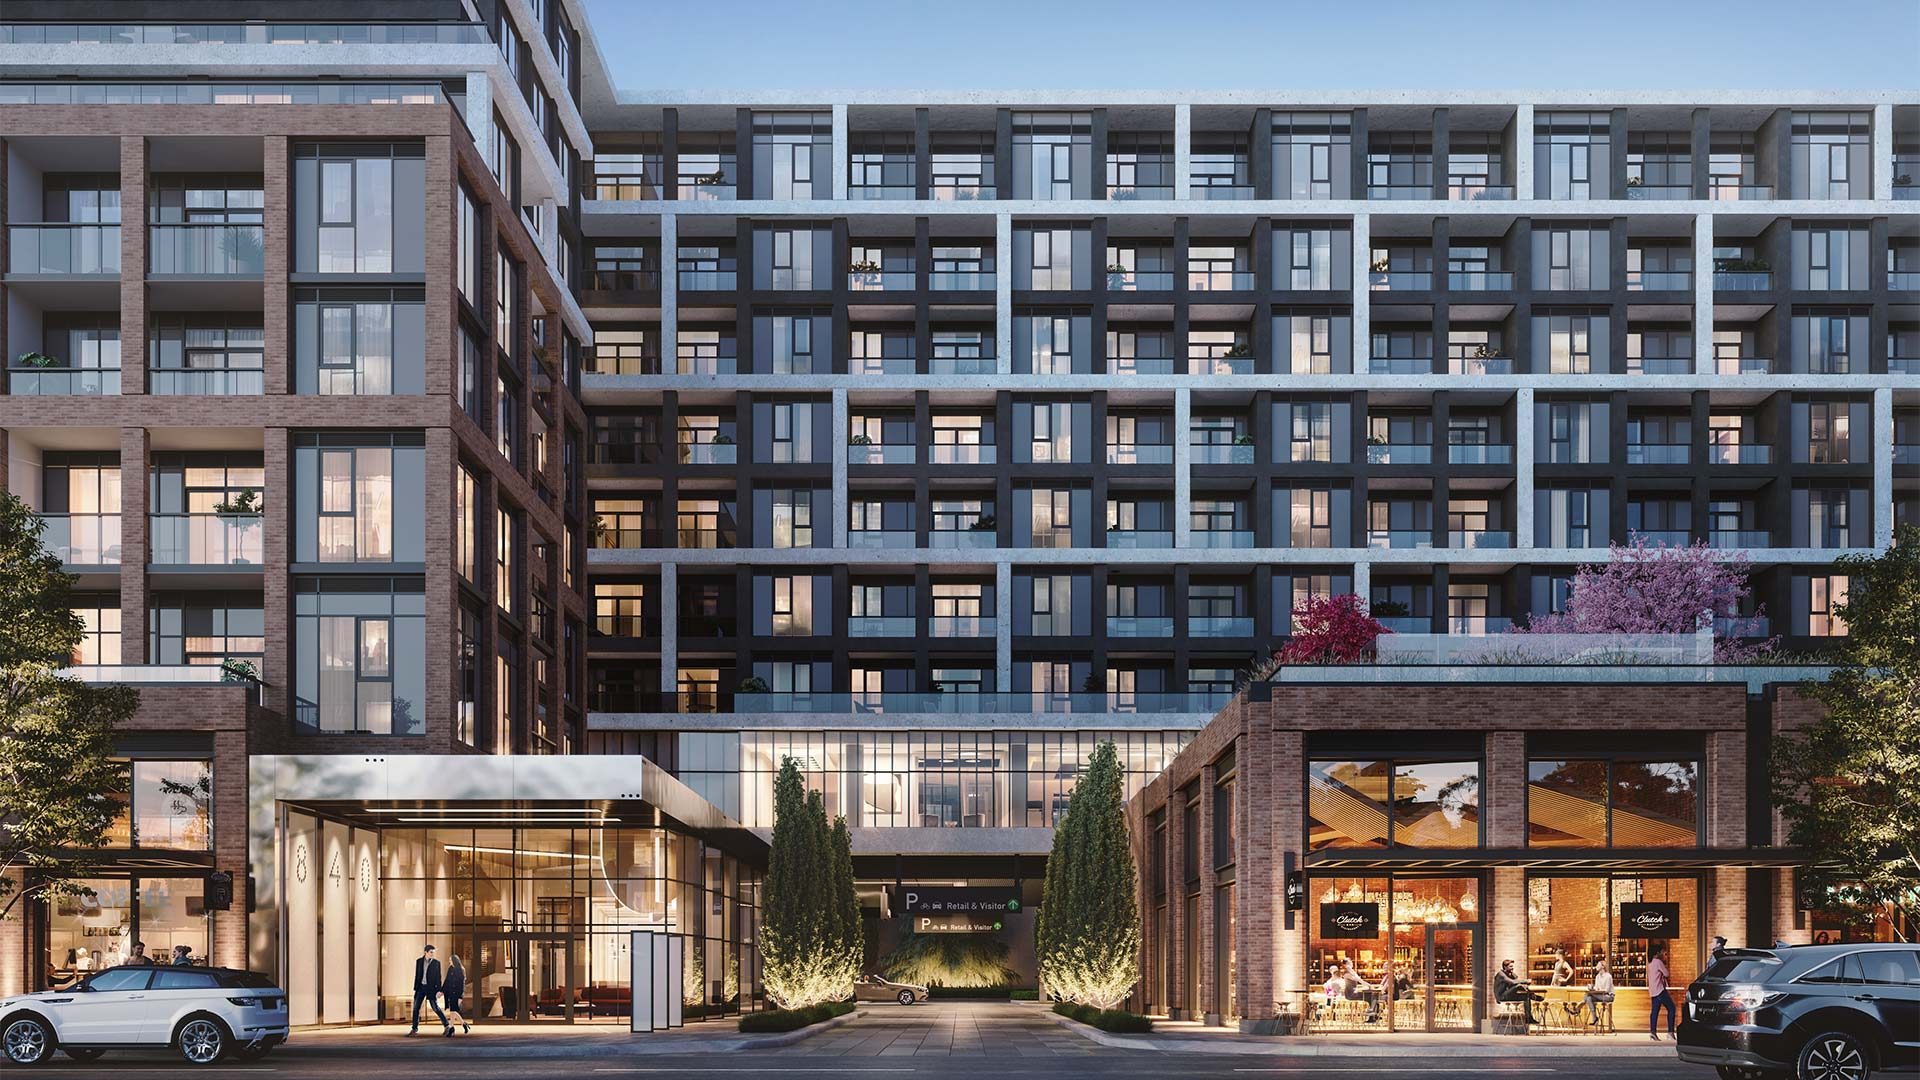 Luxury condo in Toronto. Located along at Dupont and Ossington street